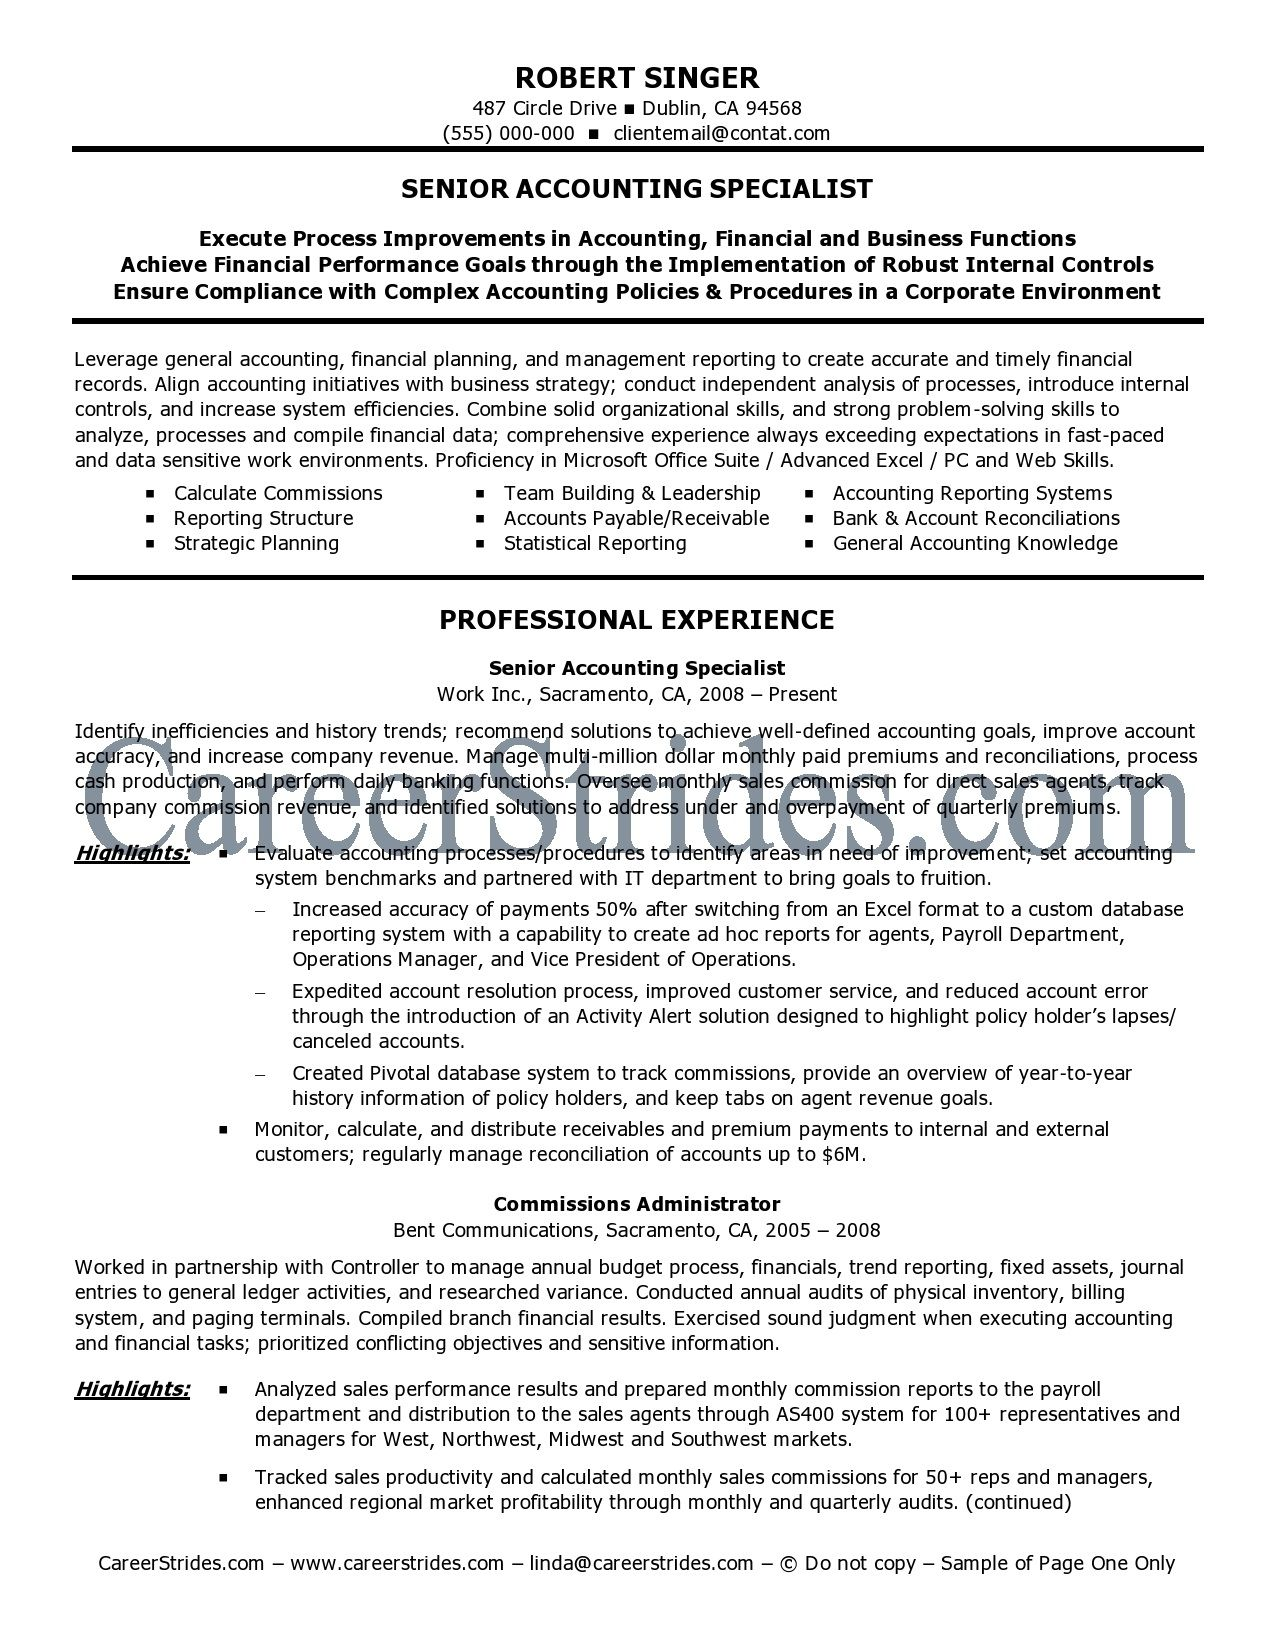 As400 Administrator Sample Resume Glamorous Brilliant Ideas Of Sle Resume For Corporate Accountant  News To Go .